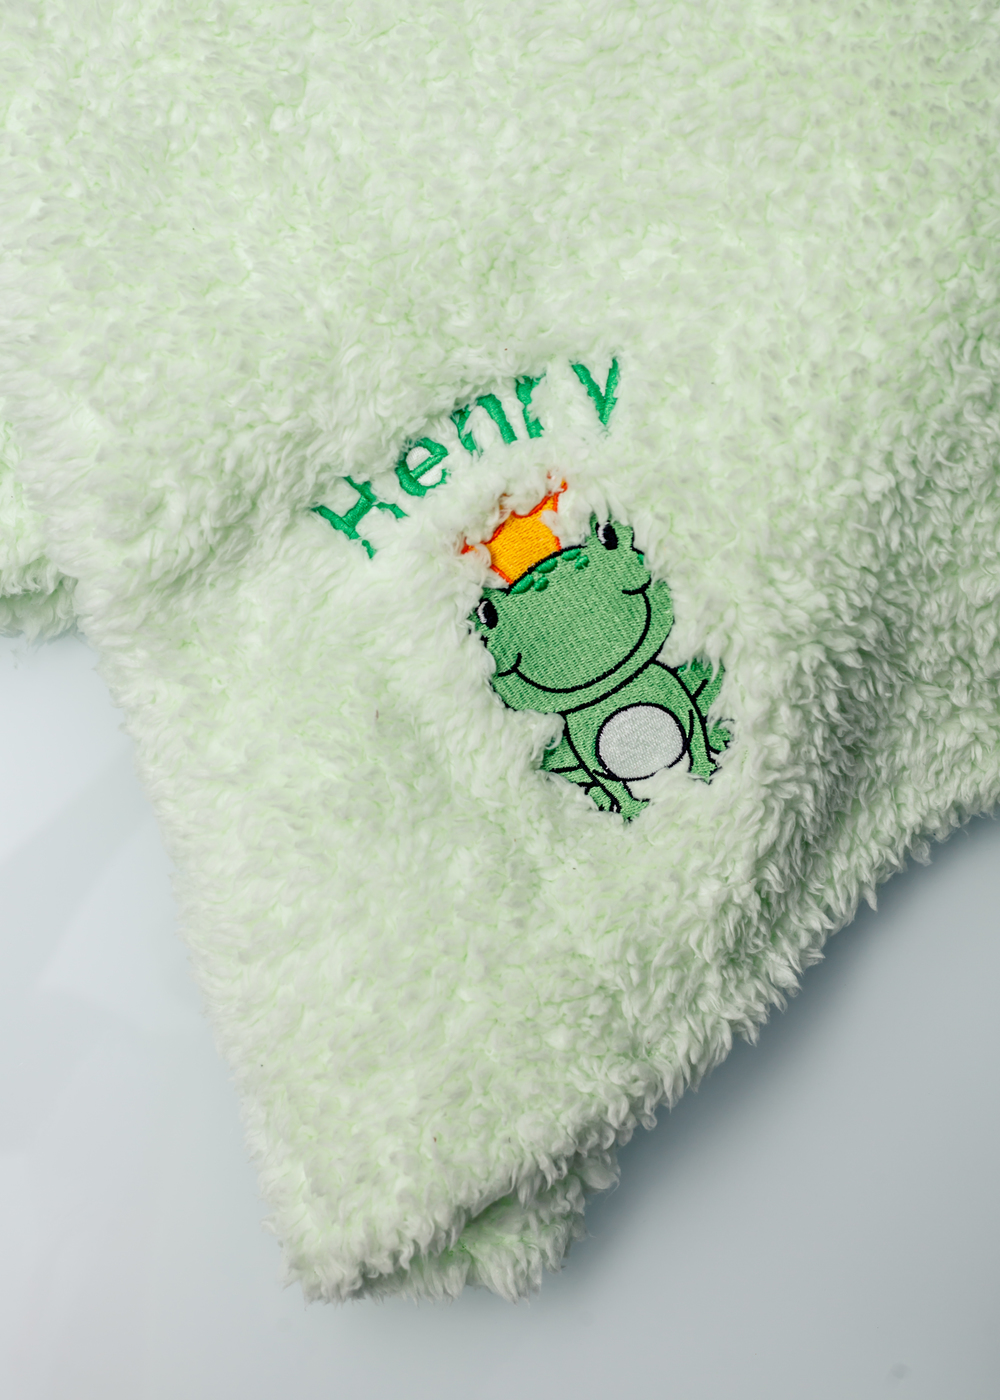 Personalized Blanket-www.thedetaileddiva.com.jpg